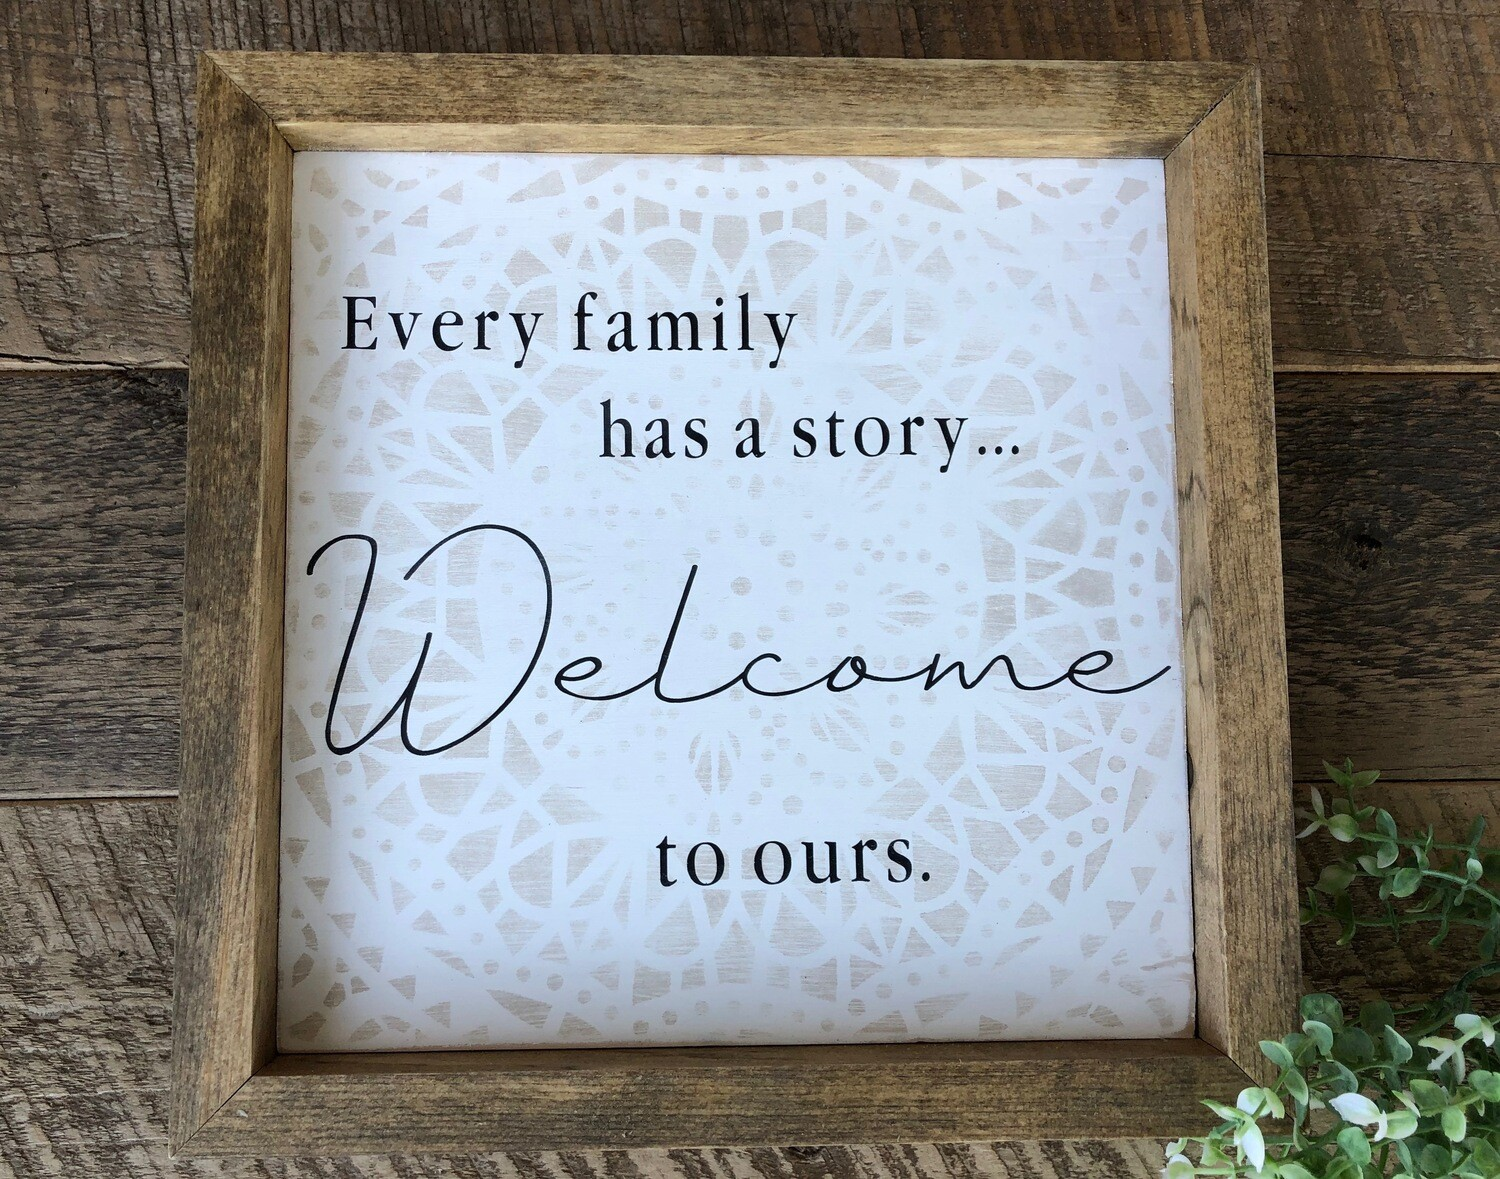 Every family has a story sign no. S133